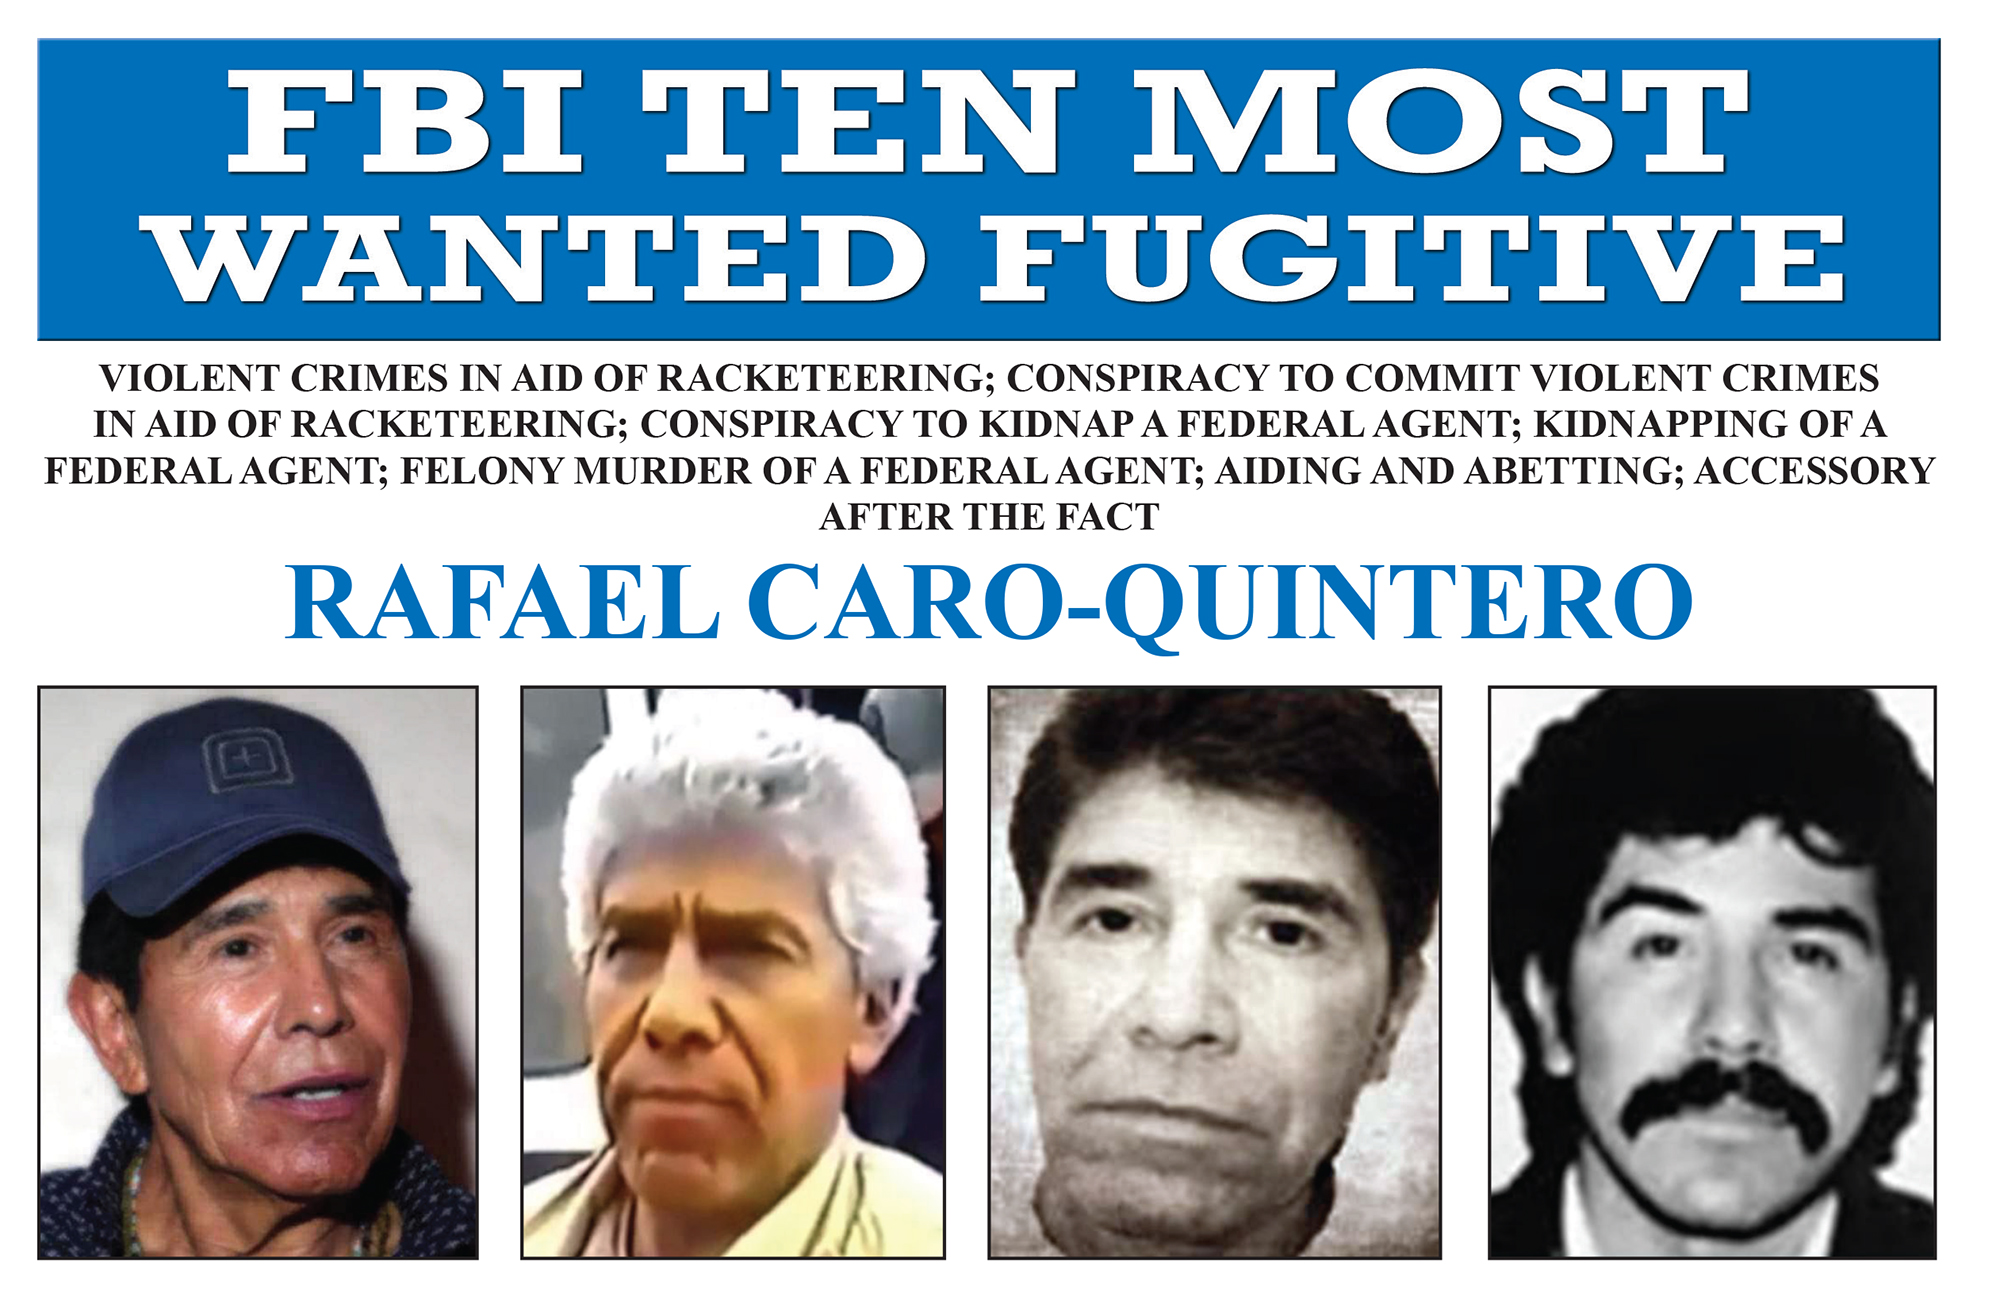 Screenshot of top portion of Rafael Caro-Quintero's Ten Most Wanted Fugitive poster